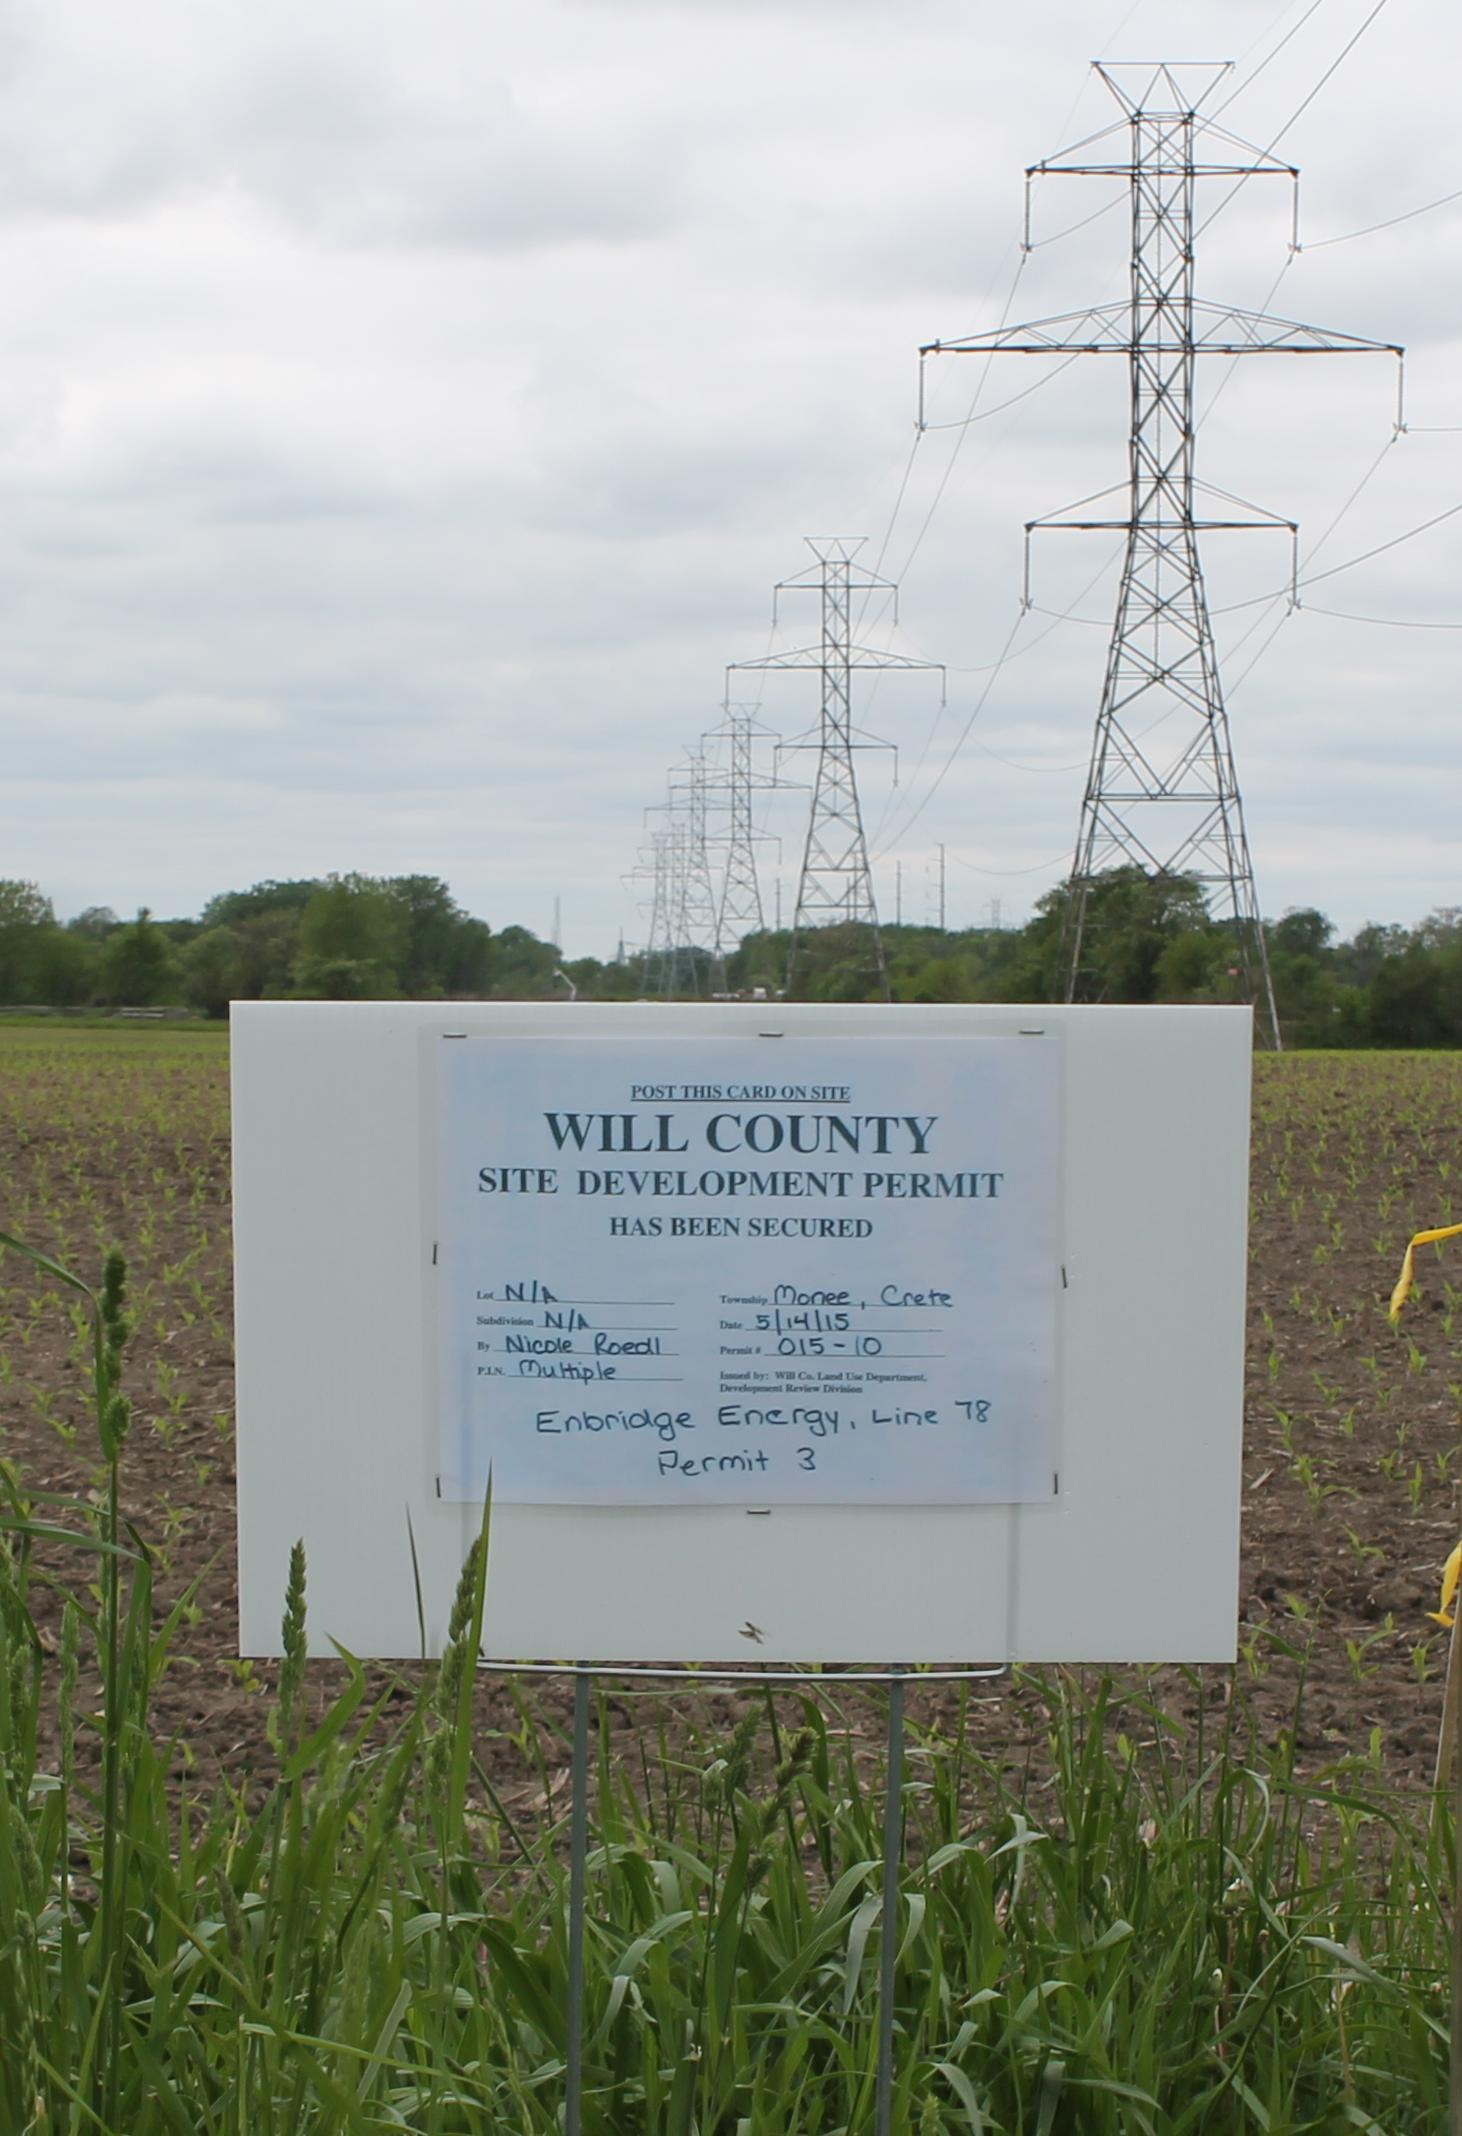 Illinois will county peotone - West View Of The Comed Right Of Way South Of Burville Road That Enbridge Energy Is